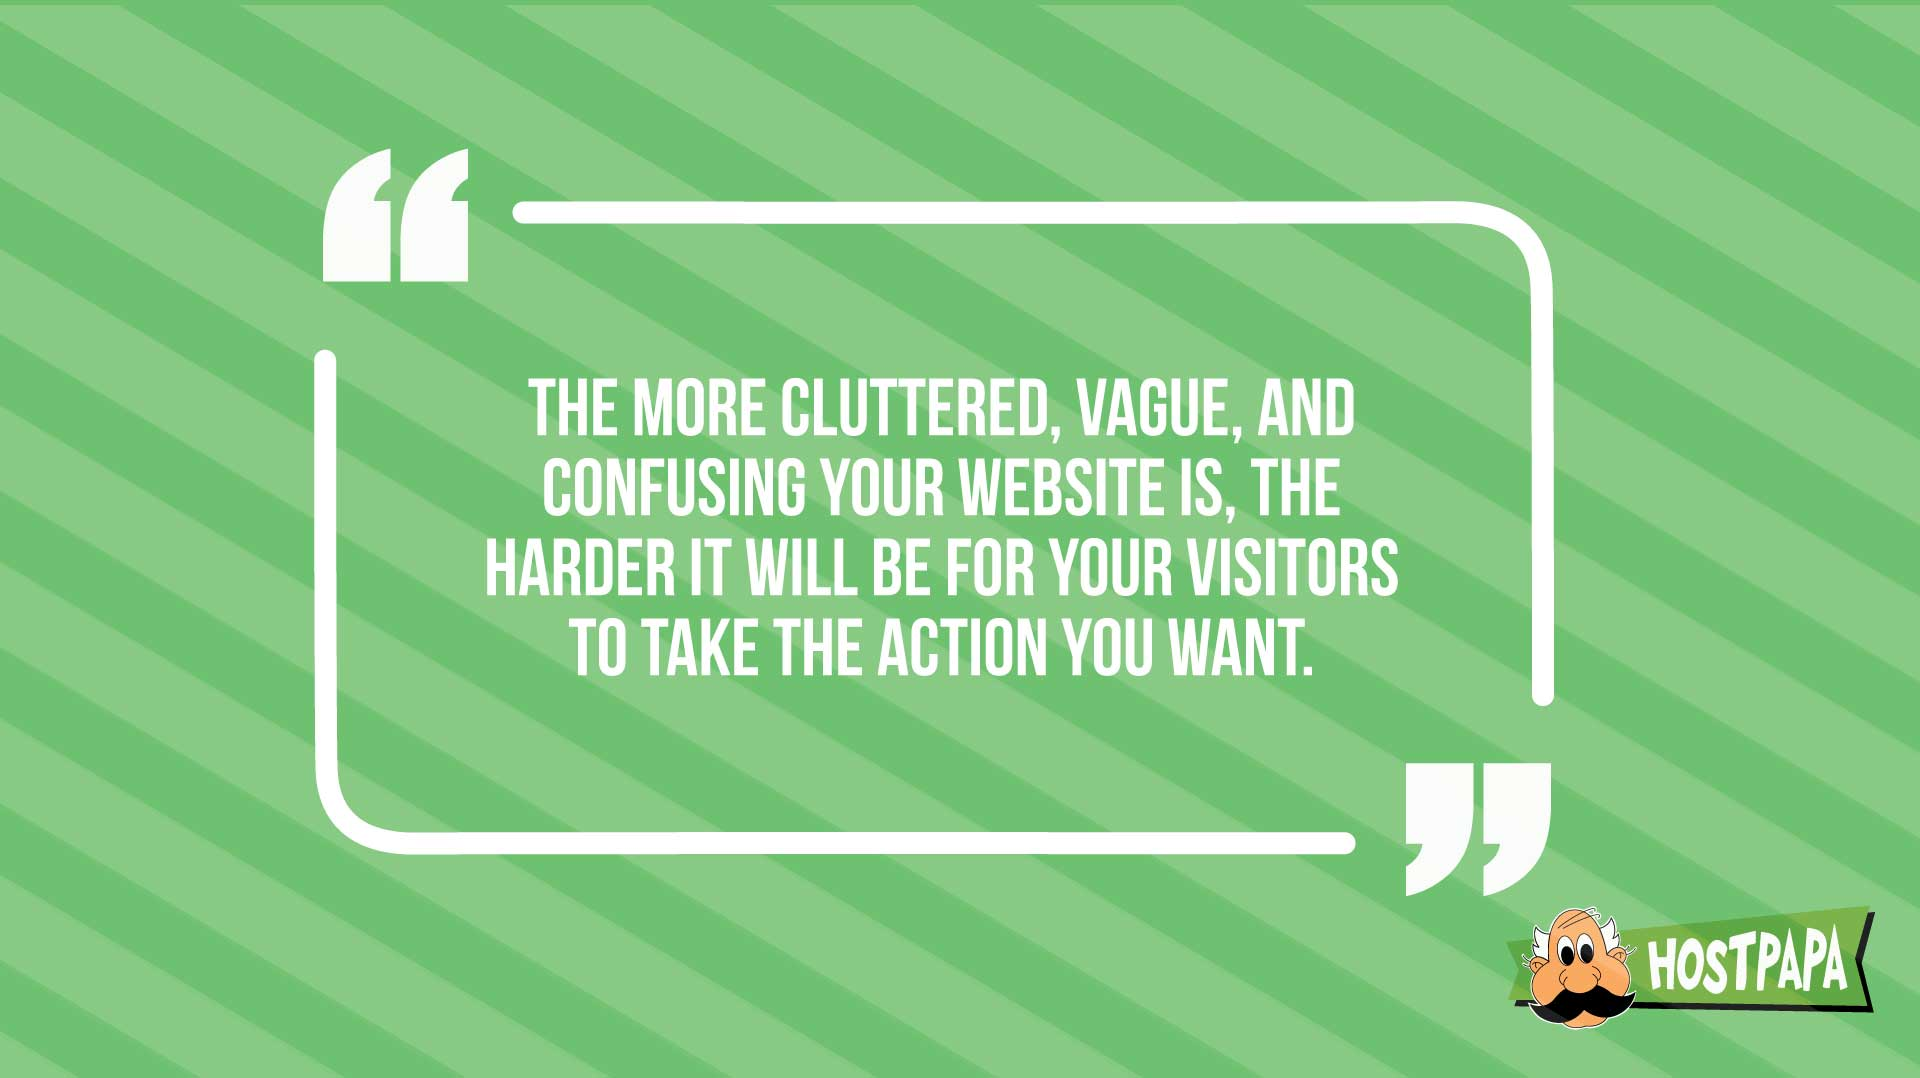 The more cluttered, vague and confussing your website is, the harder it will ve for your visitors to take the action you want.